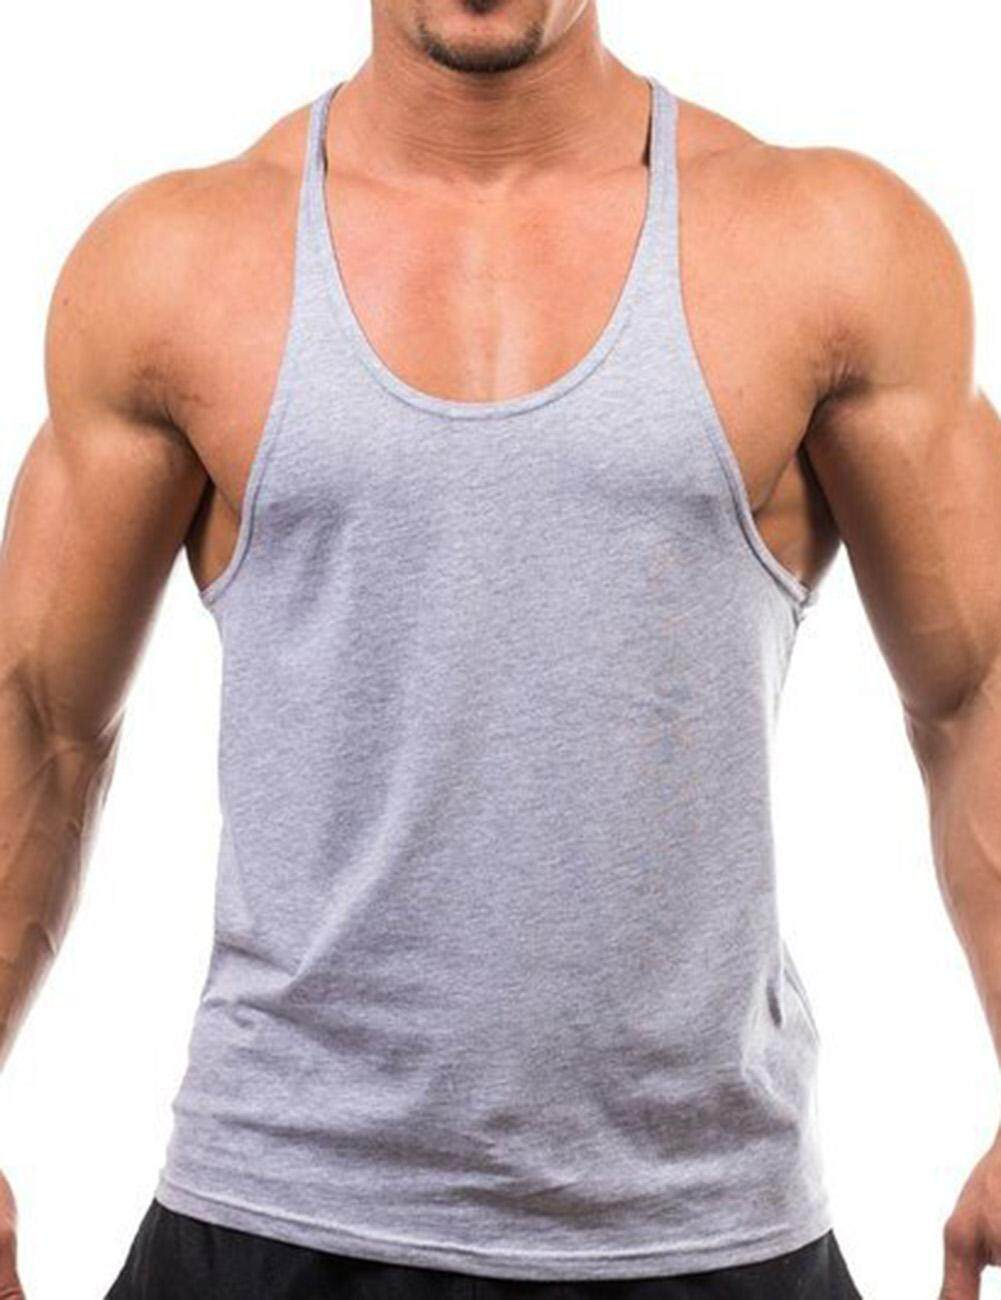 Yunmiao Mens Fashion Basic Solid Training Bodybuilding Gym Tank Tops Workout Fitness Vest Size:m-Xxl(m L Xl Xxl) By Yantai Yunmiao Dianzi Shangwu Ltd.